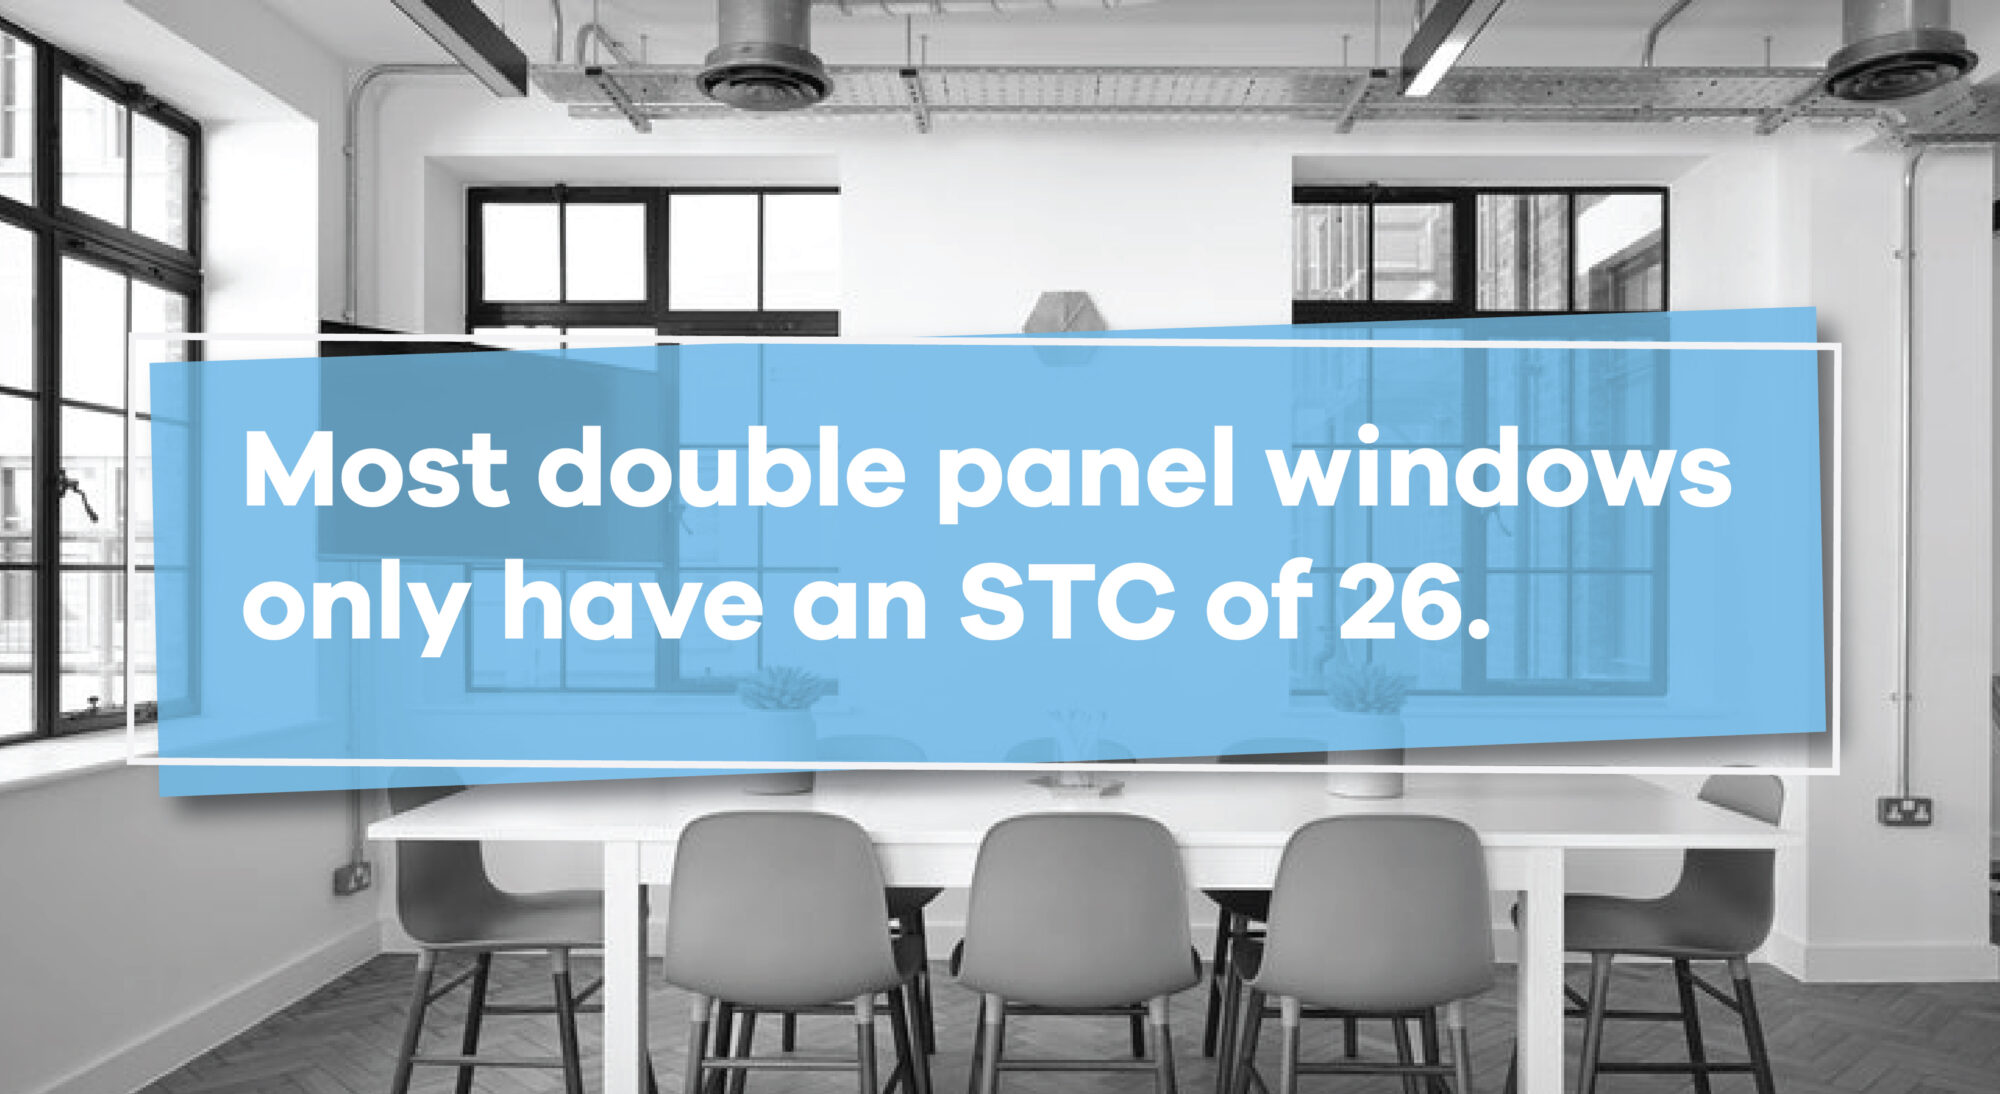 double panel windows have a STC of 26